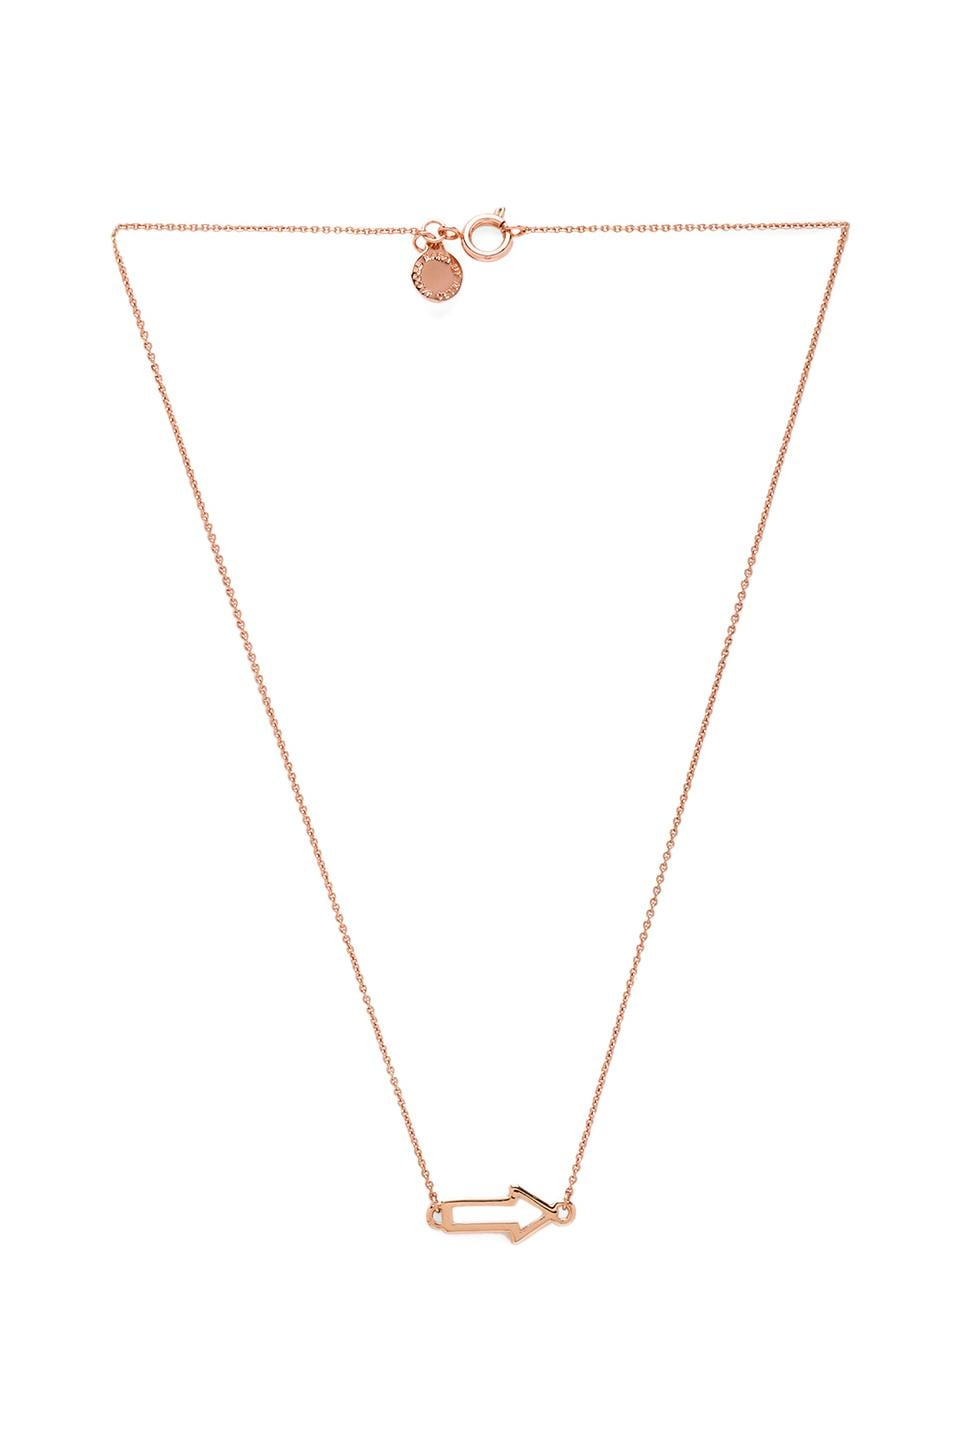 Marc by Marc Jacobs Grab & Go Arrow Necklace in Rose Gold